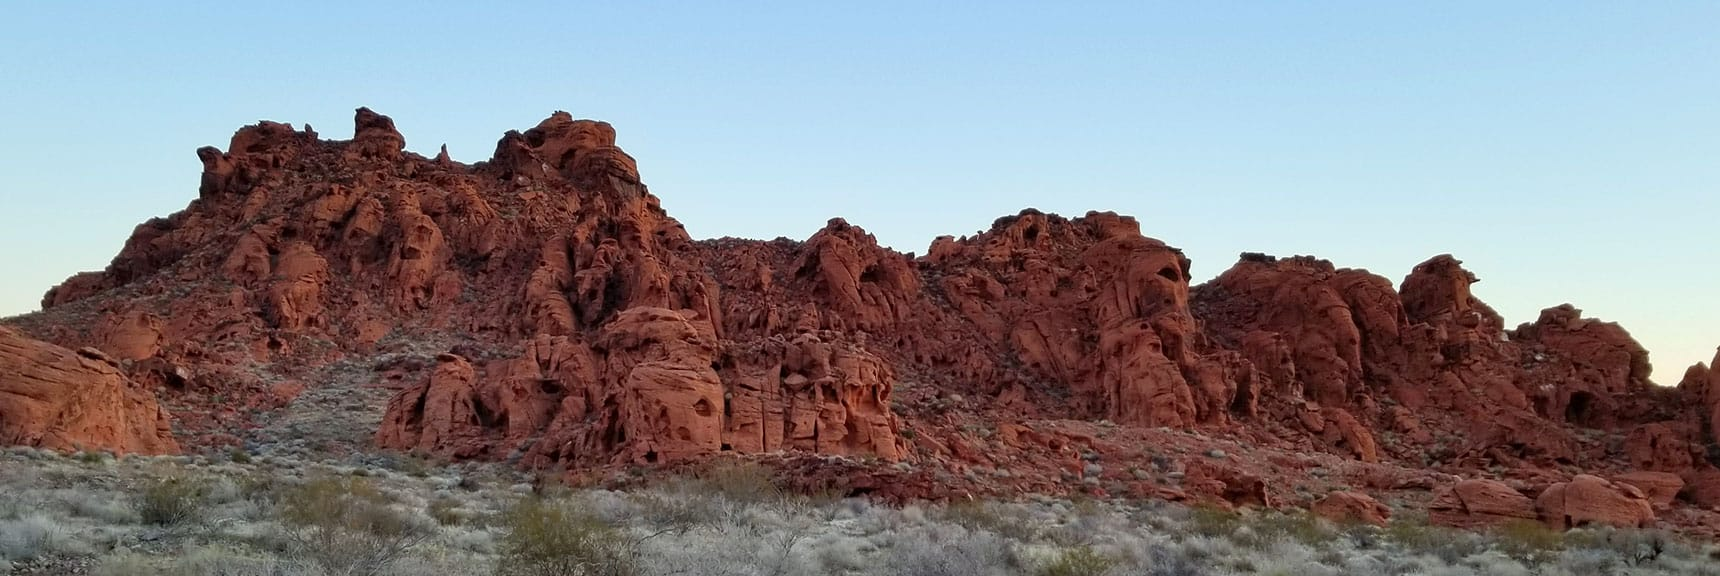 Rock Formations Just Beyond the Entrance of Valley of Fire State Park, Nevada